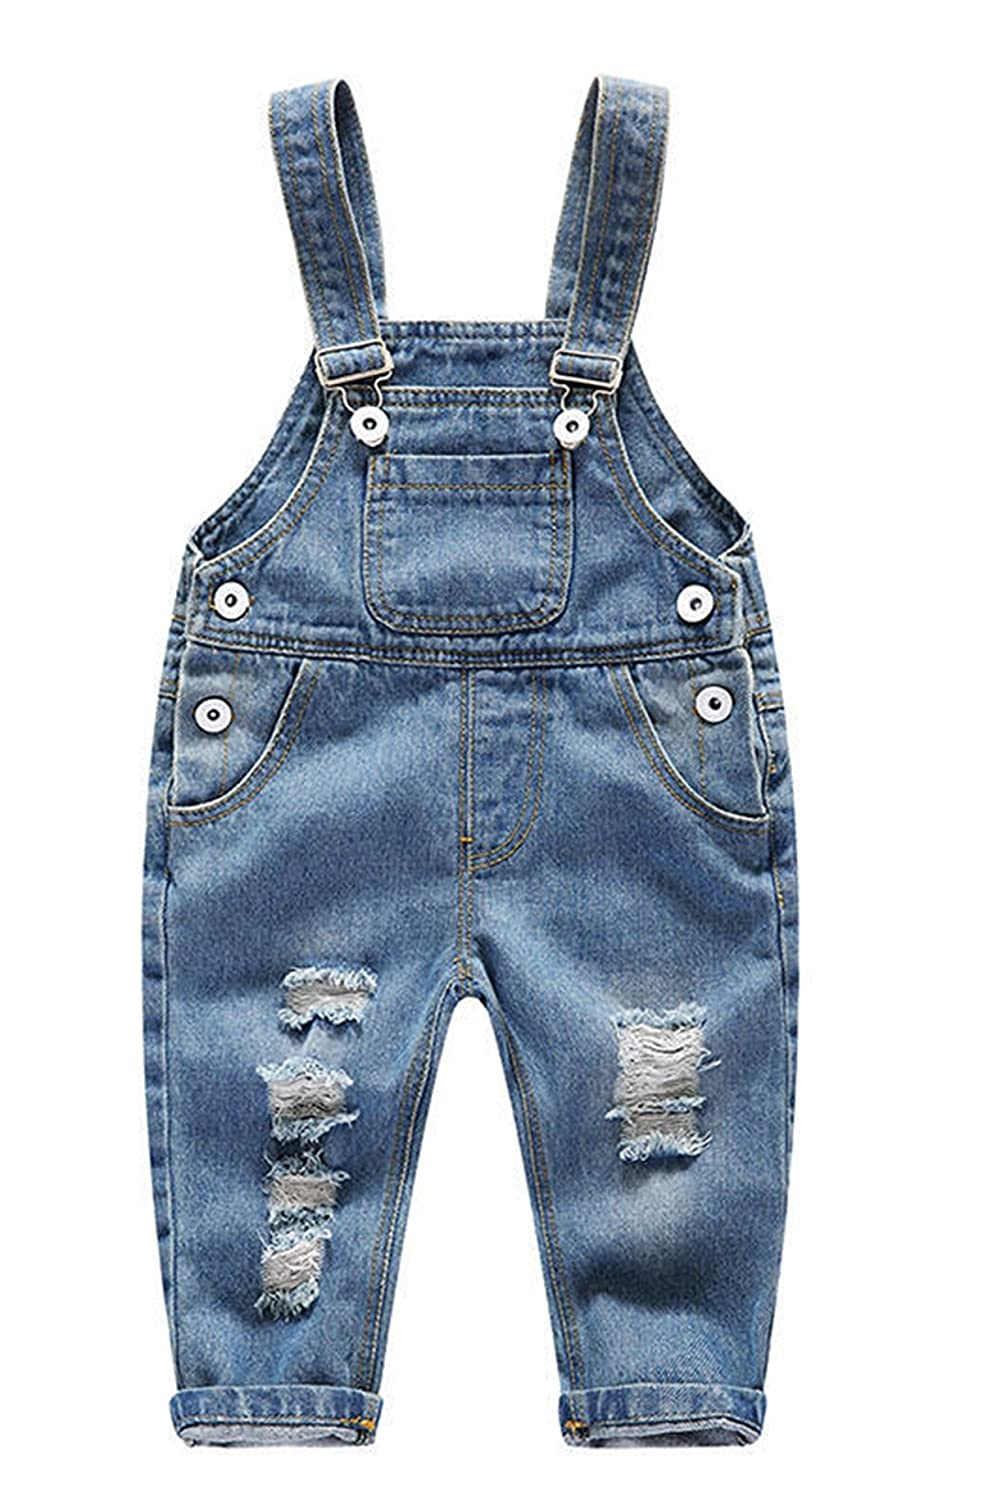 Boys Cute Blue Denim Distressed Front Bibs Jeans Overall Shotall Jumpsuit with Adjustable Strap BB01-0922-56